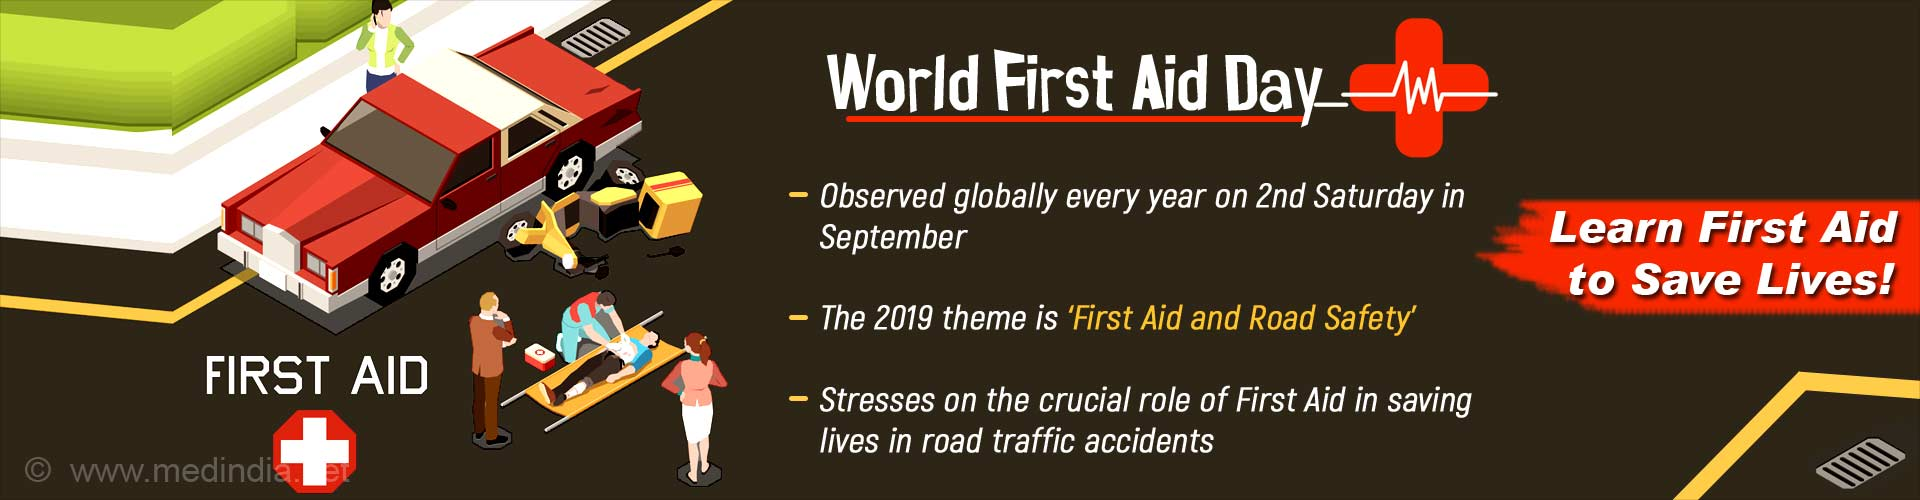 World First Aid Day: 'First Aid and Road Safety'